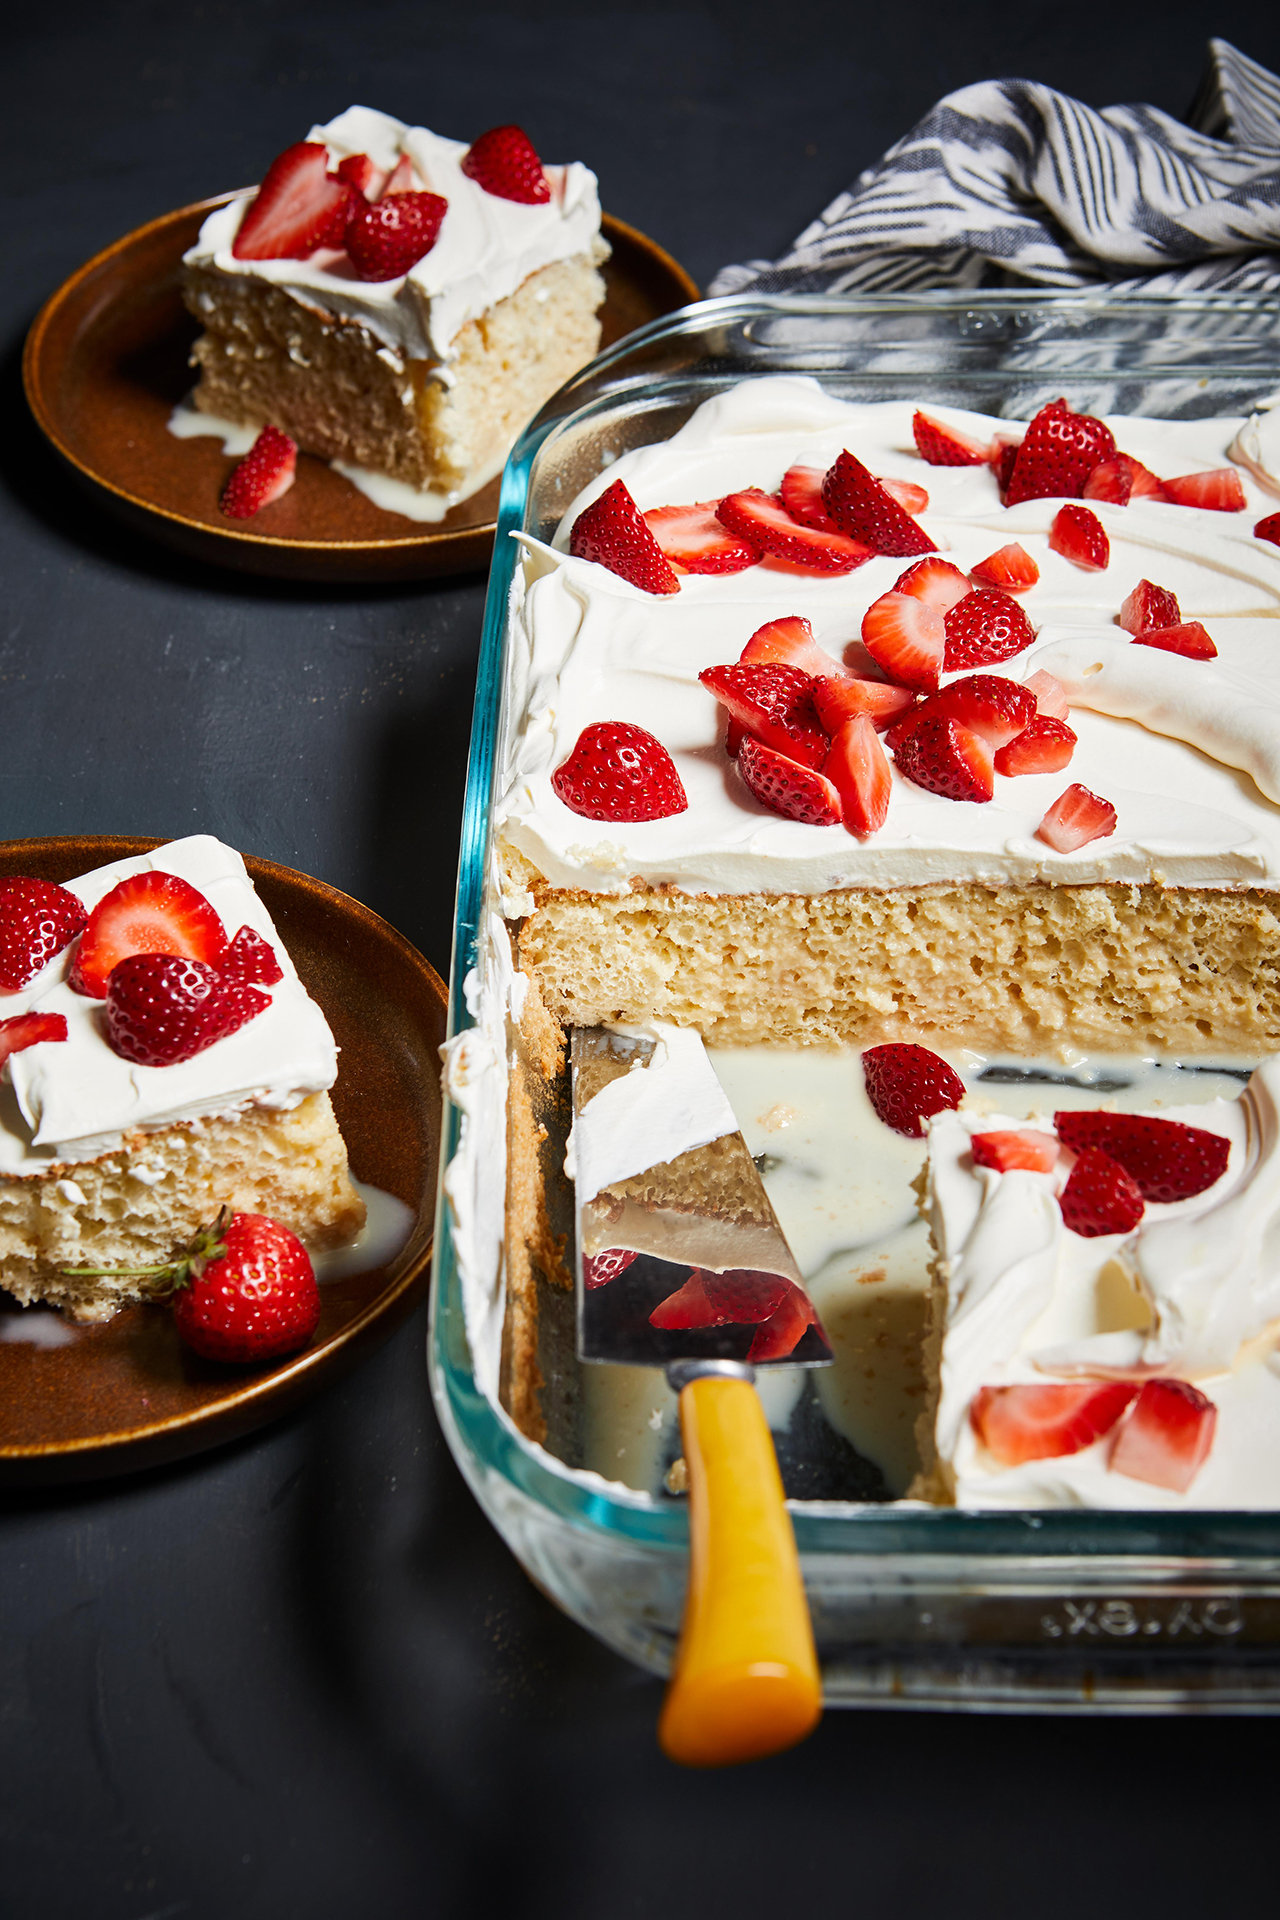 Homemade Tres Leches Cake with spatula in glass dish